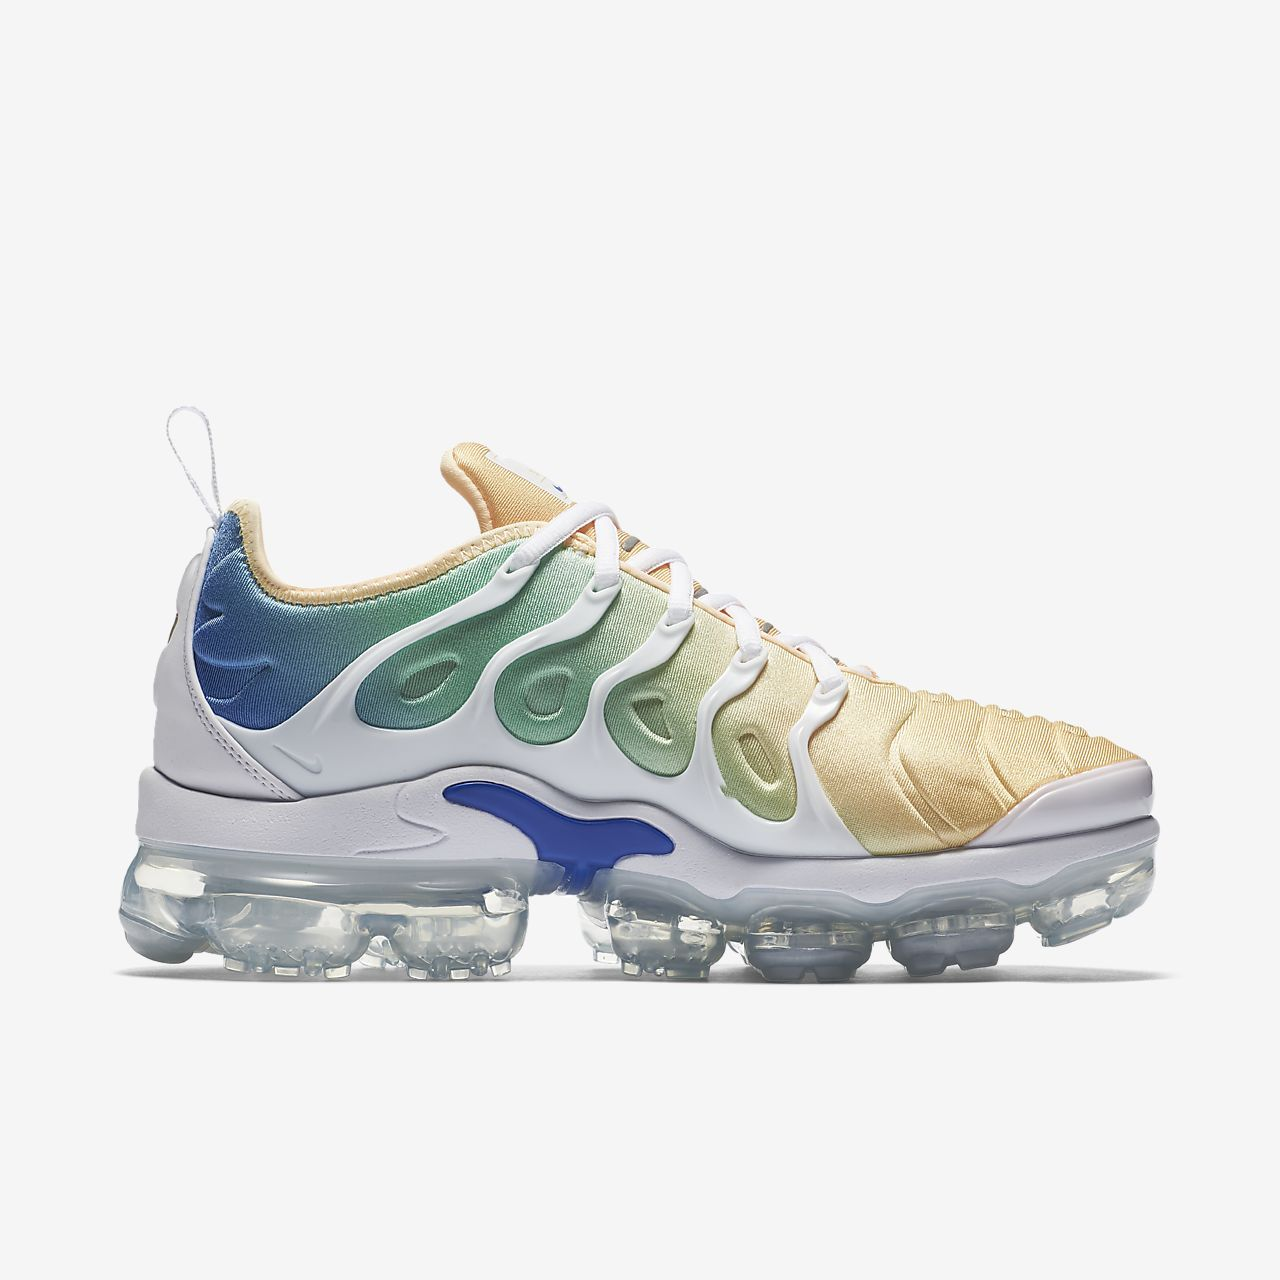 Sko Sko Sko nike Air VaporMax Plus för kvinnor sneakers Pinterest c4feb9